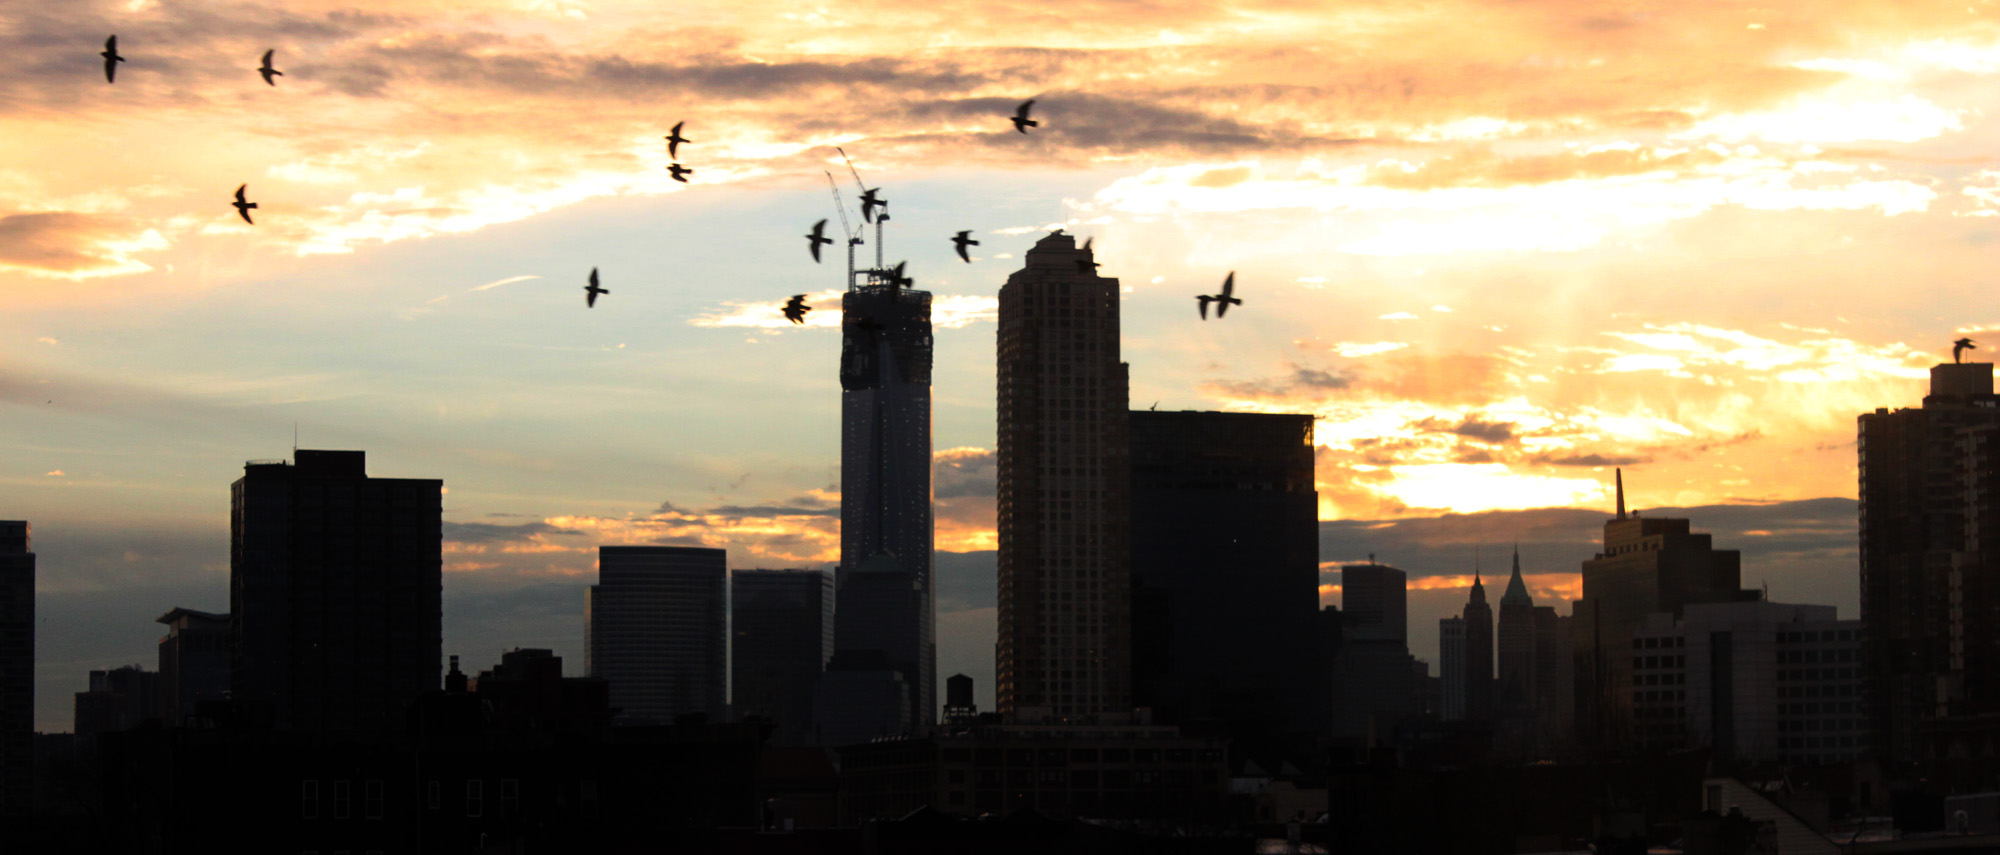 Morning birds and the construction of the World Trade Center, January 17, 2013